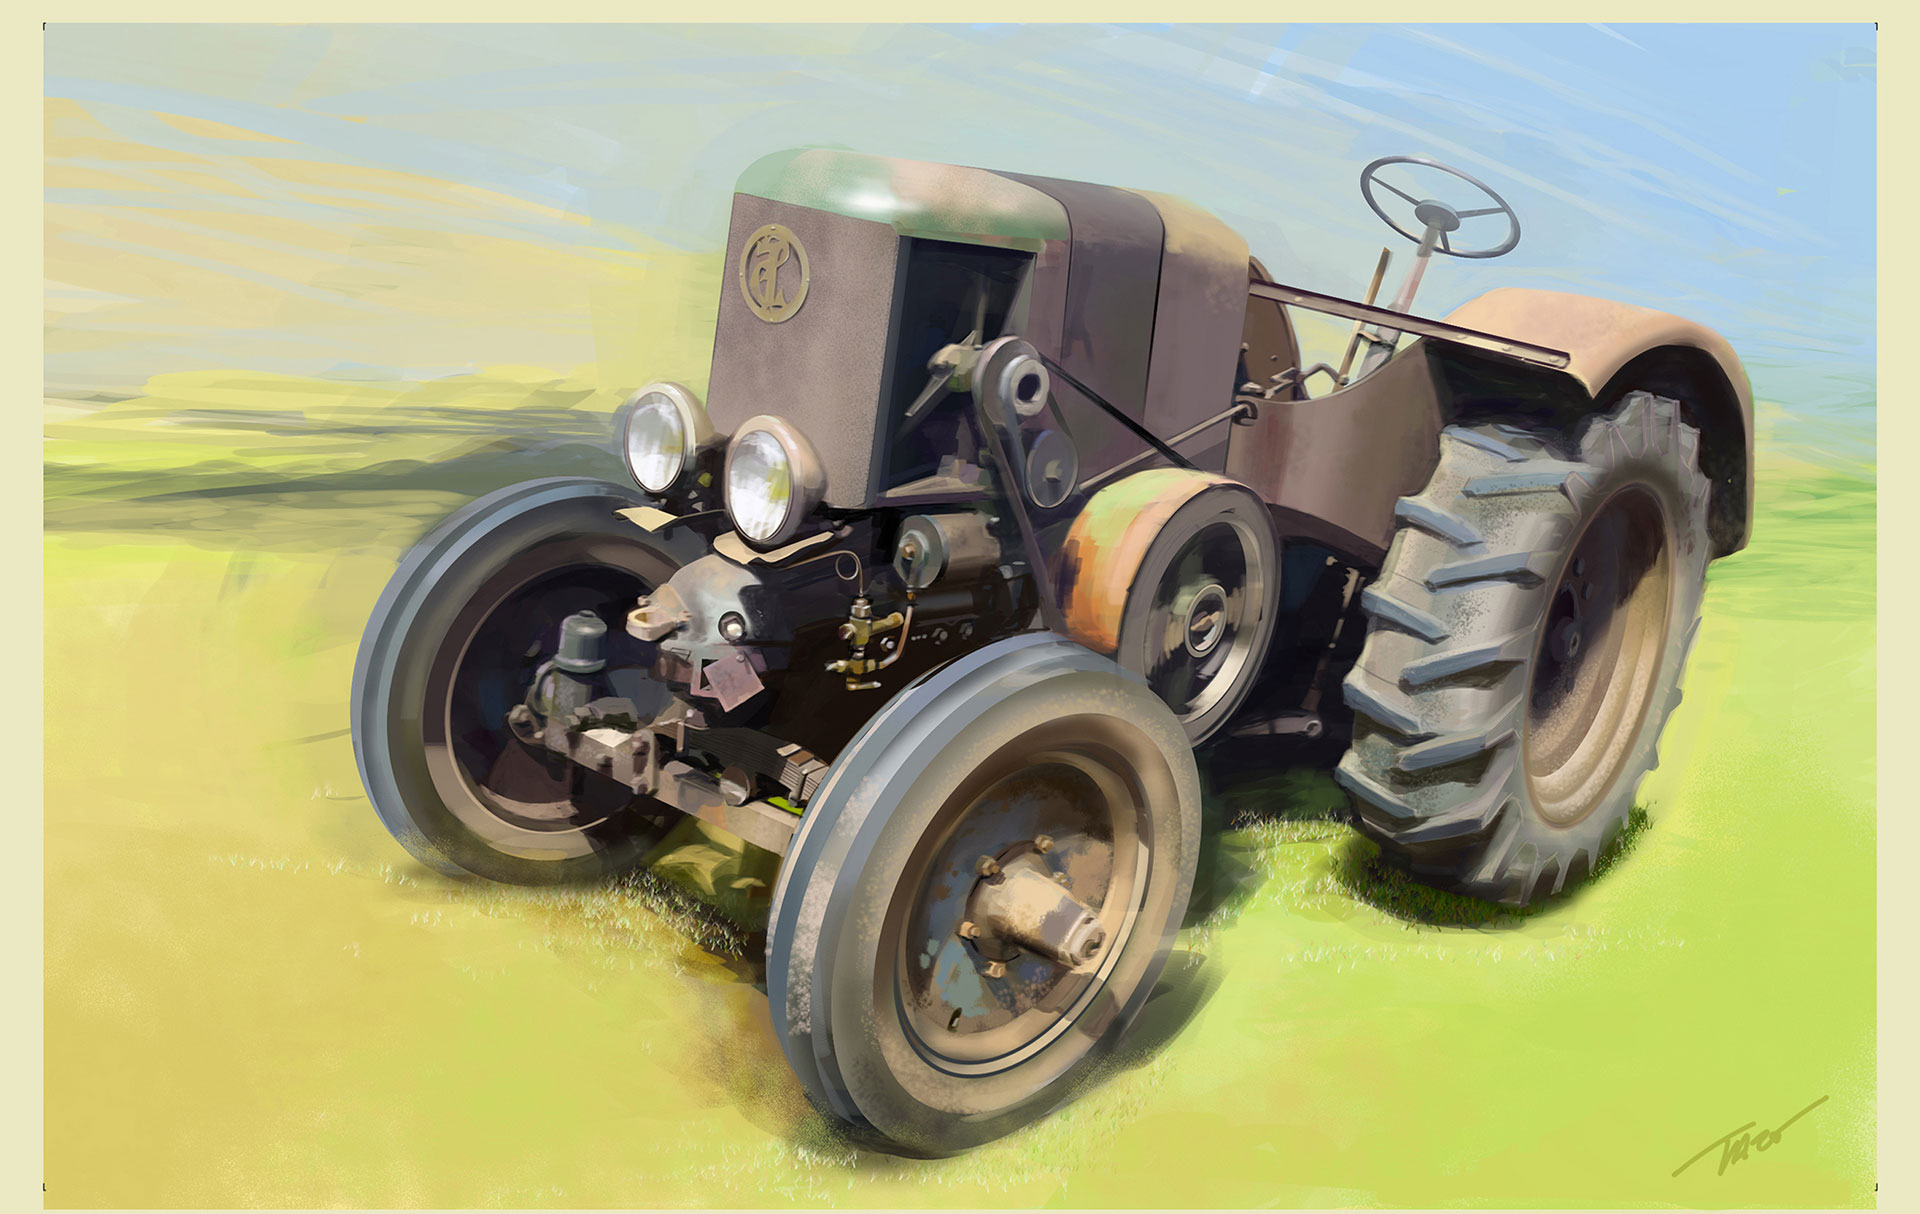 Honda Kit Trac Concept - Digital Painting